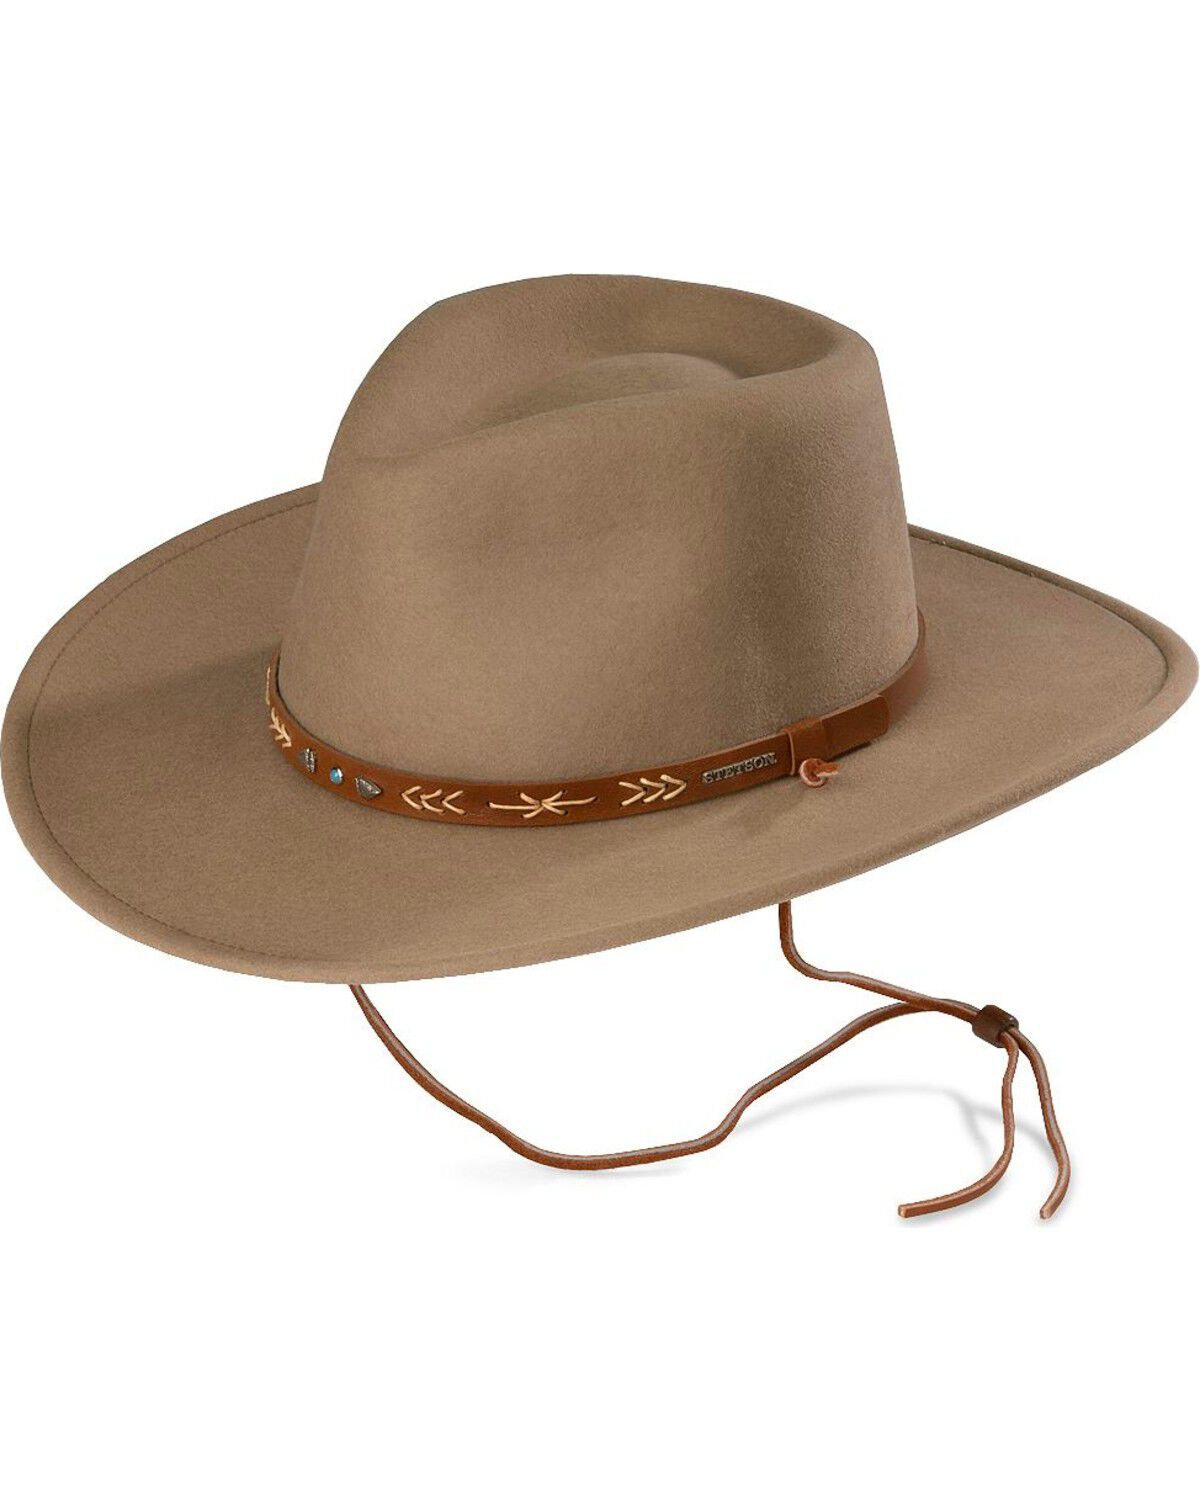 aed961a5f313a Men s Outback Hats